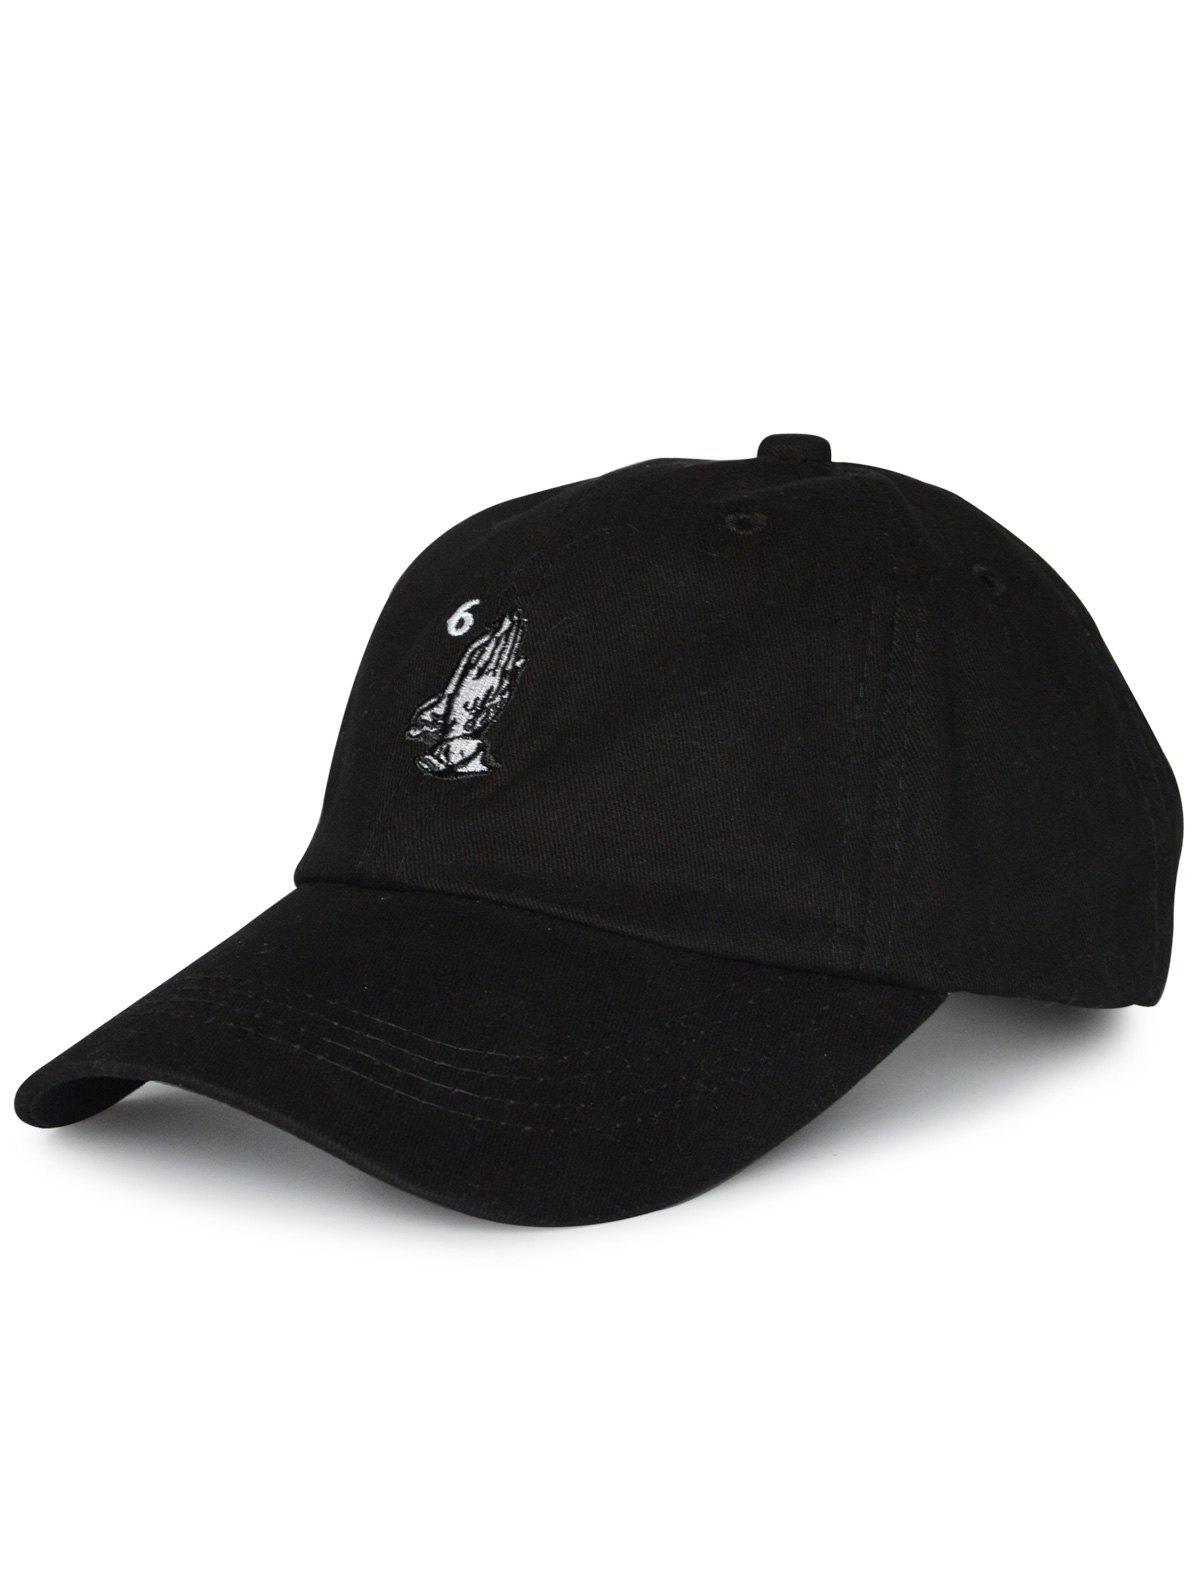 Sunscreen Palms Number Embroidery Baseball HatACCESSORIES<br><br>Color: BLACK; Hat Type: Baseball Caps; Group: Adult; Gender: Unisex; Style: Fashion; Pattern Type: Figure; Material: Polyester; Weight: 0.1100kg; Package Contents: 1 x Hat;